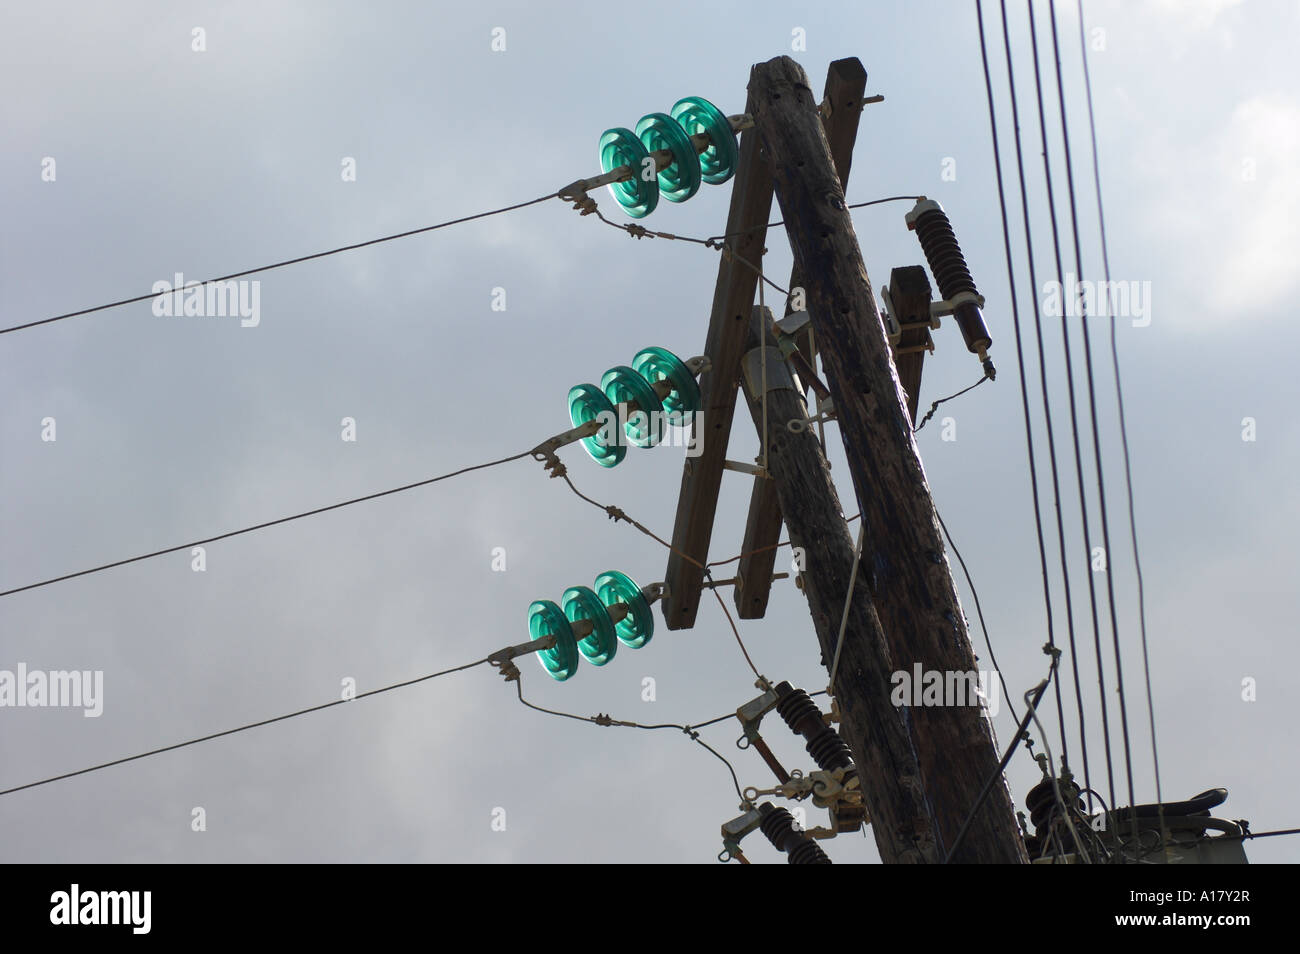 Three phase power lines with glass insulators on wooden support ...